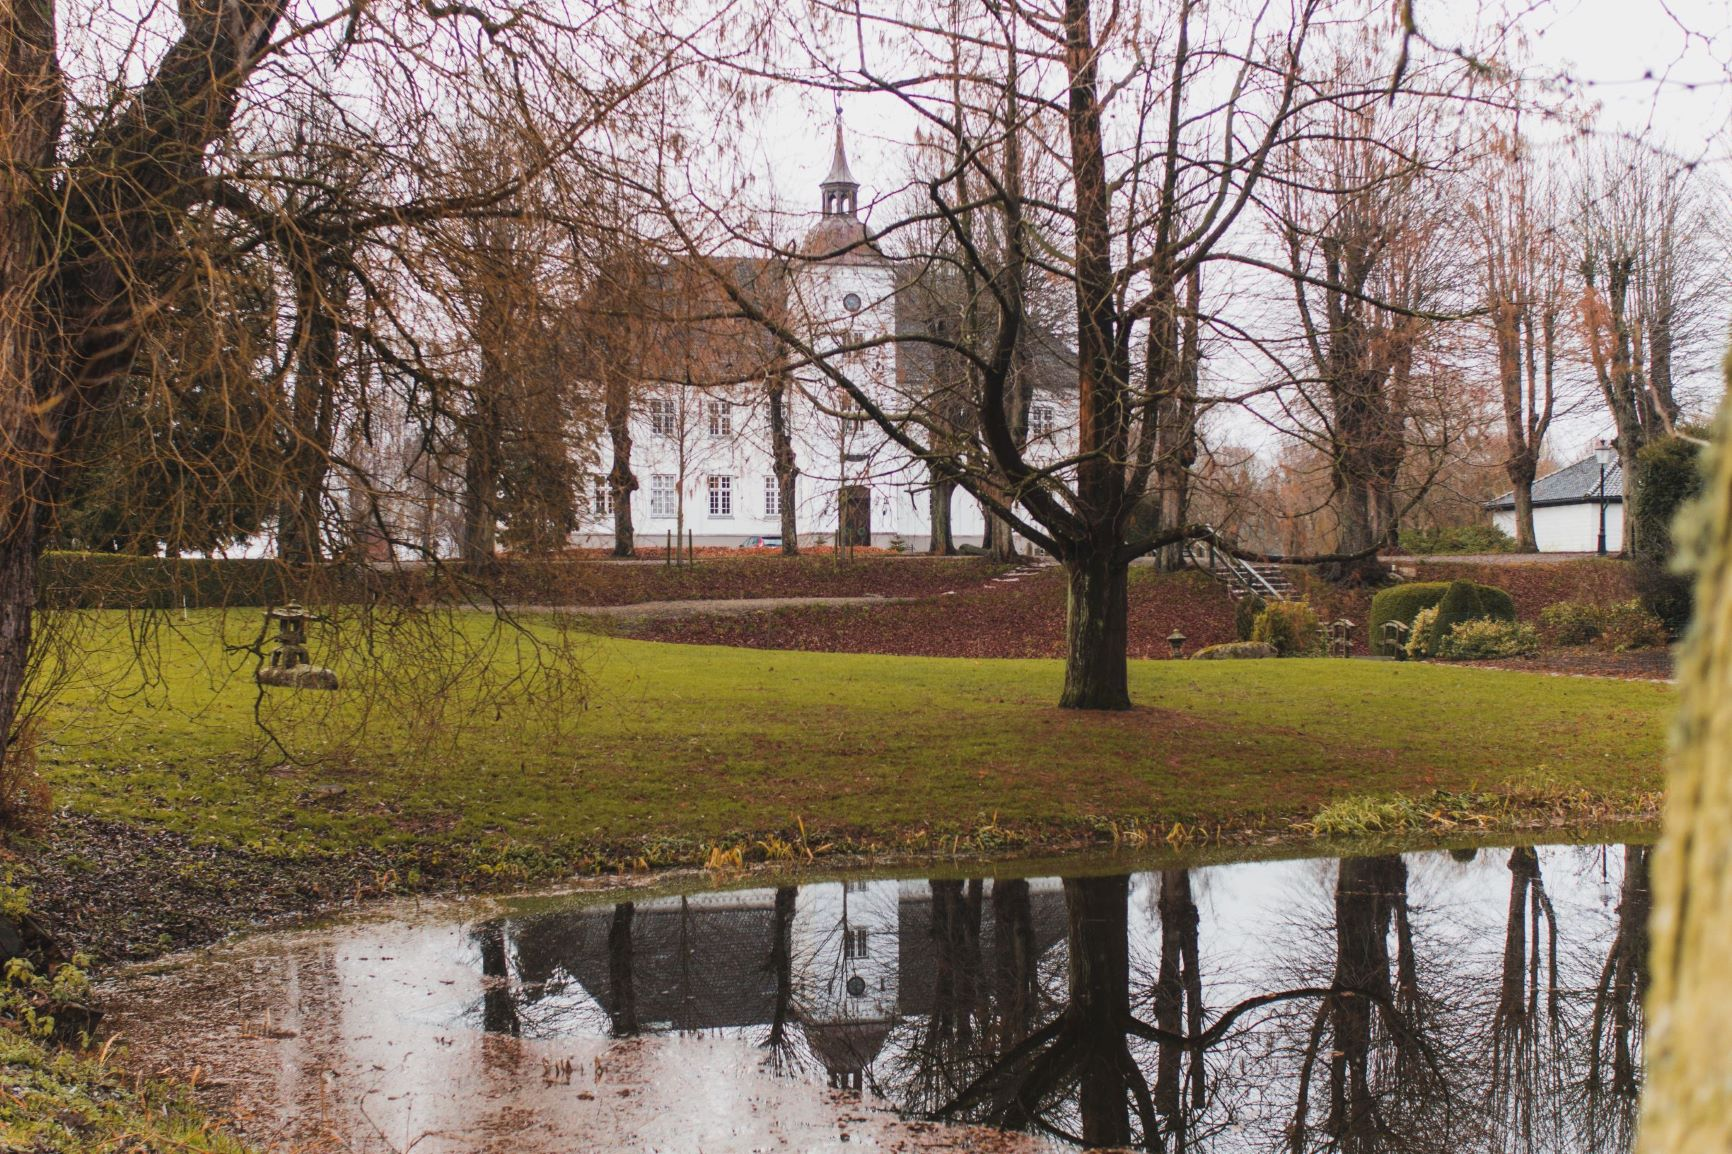 Kærstrup manor garden sight